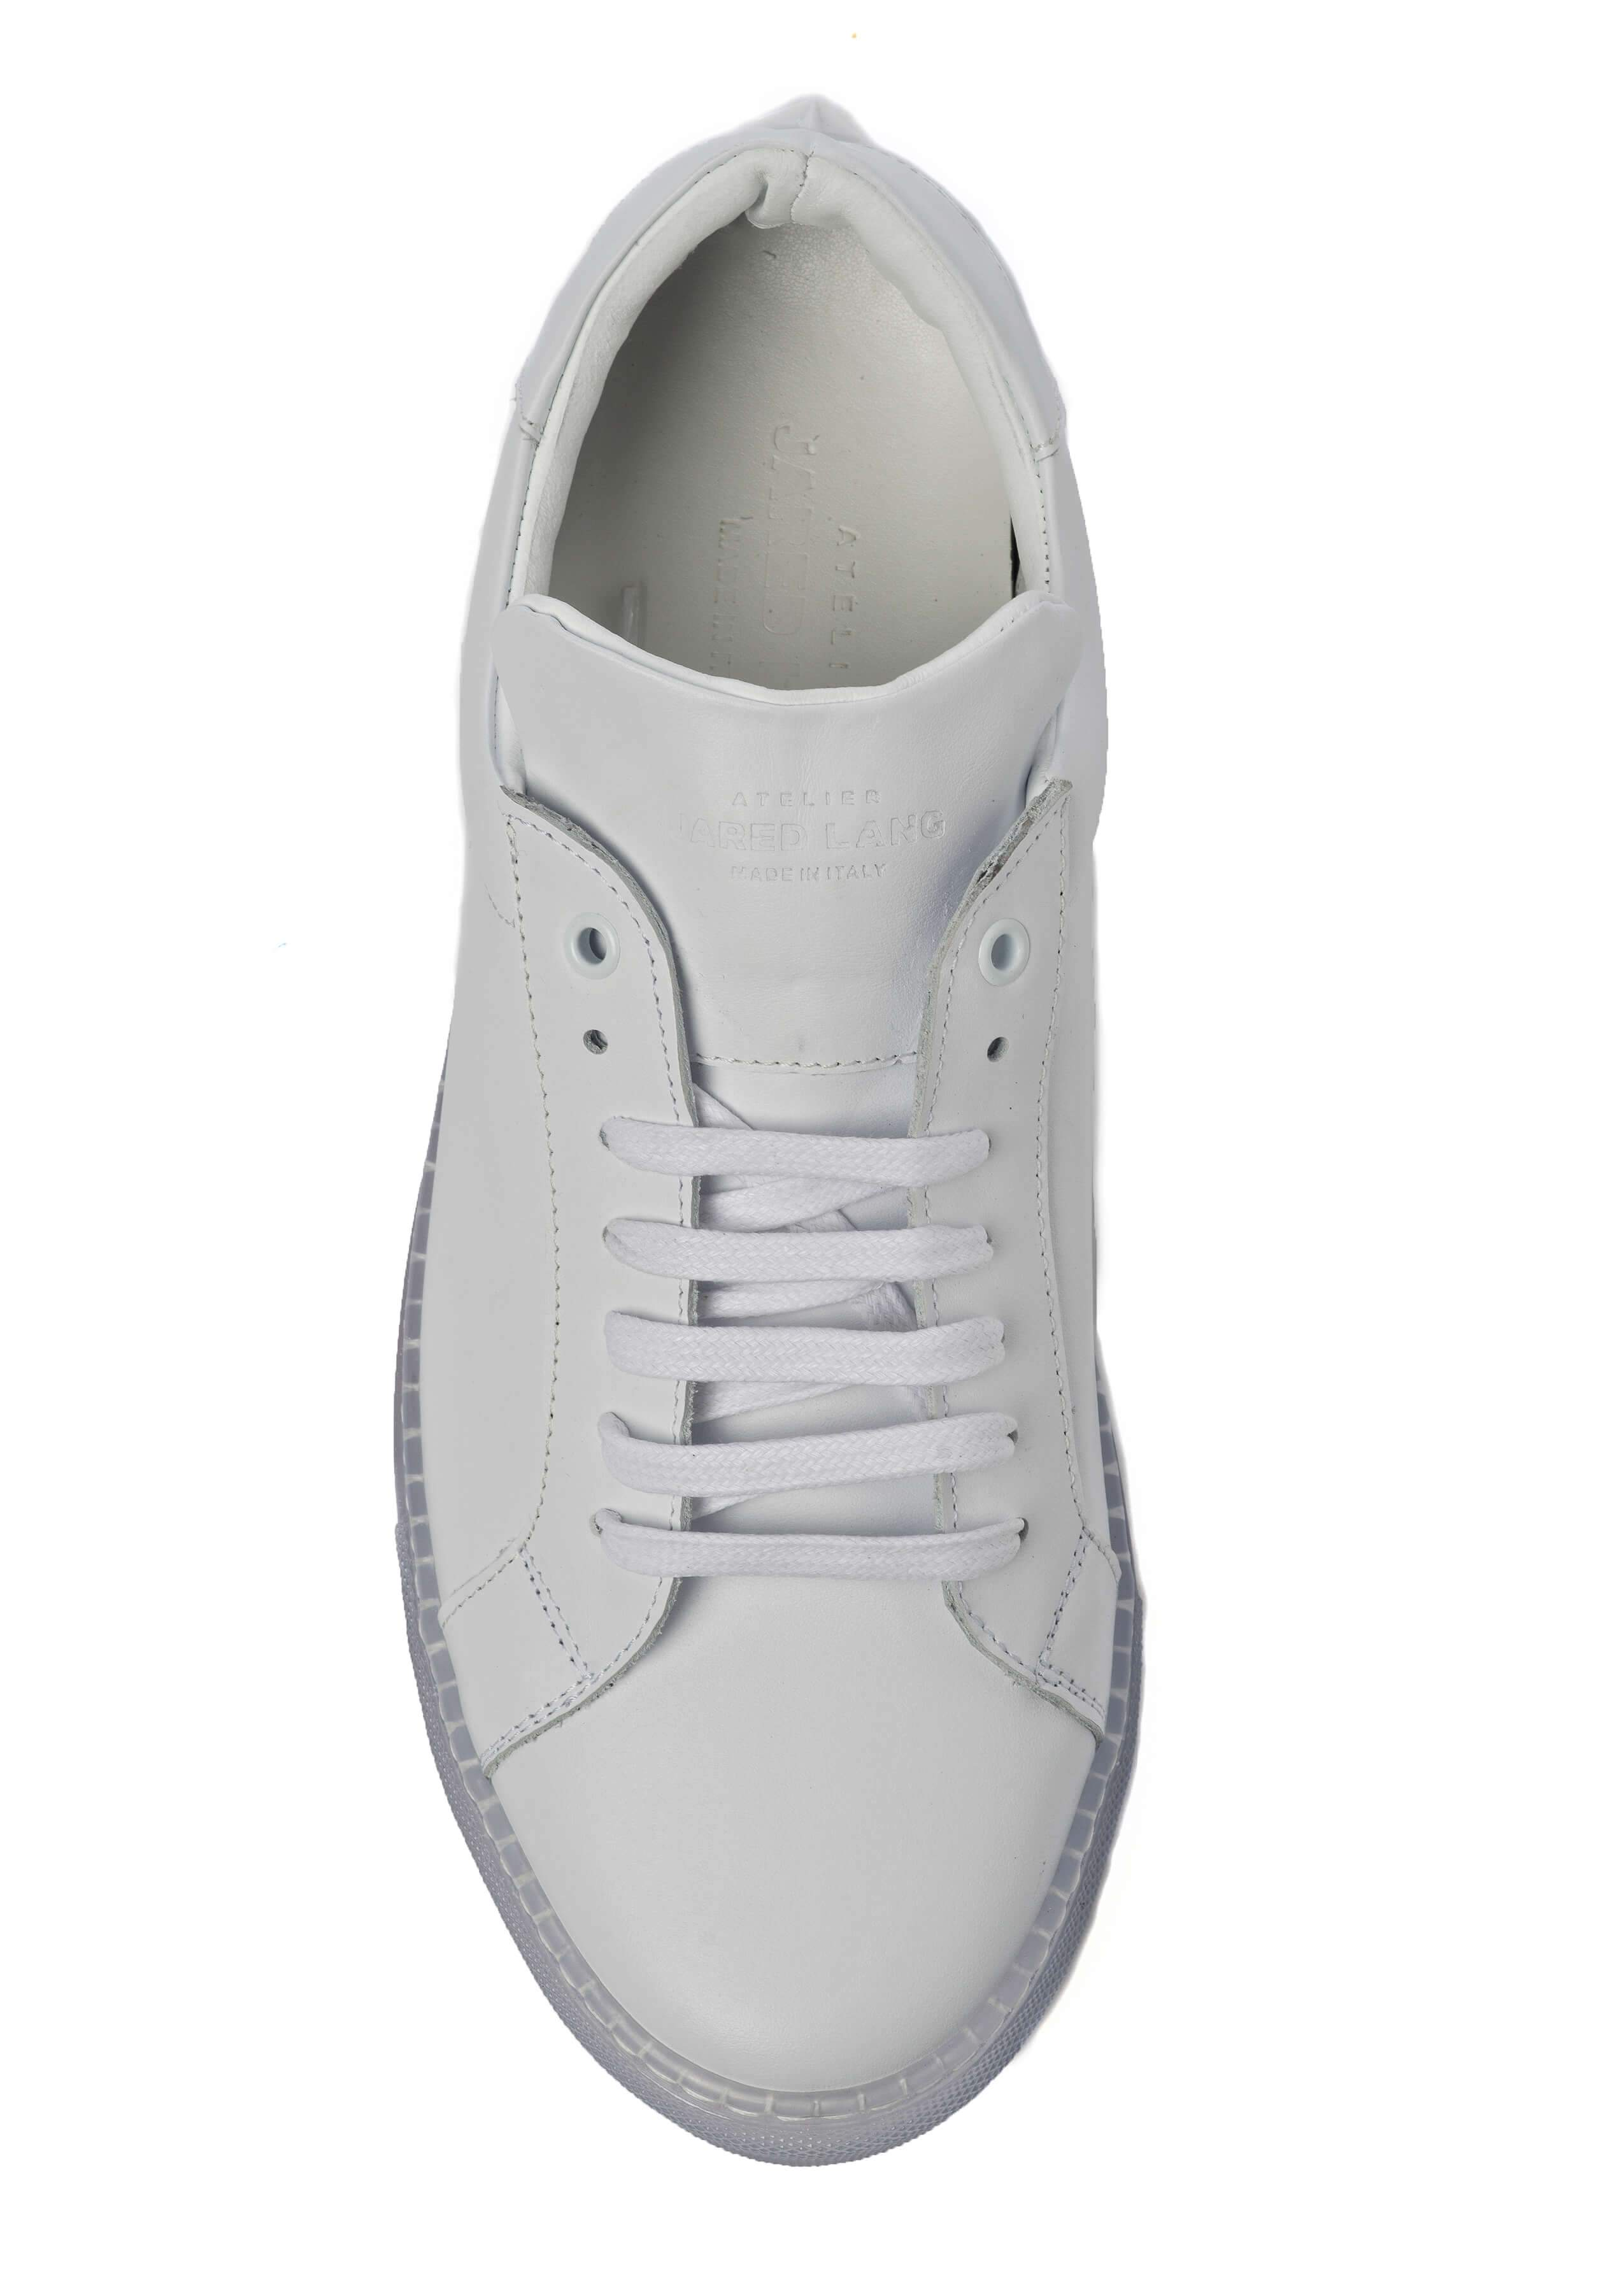 White Clear Sole Sneakers for Men - Top 1818-CRW - Jared Lang